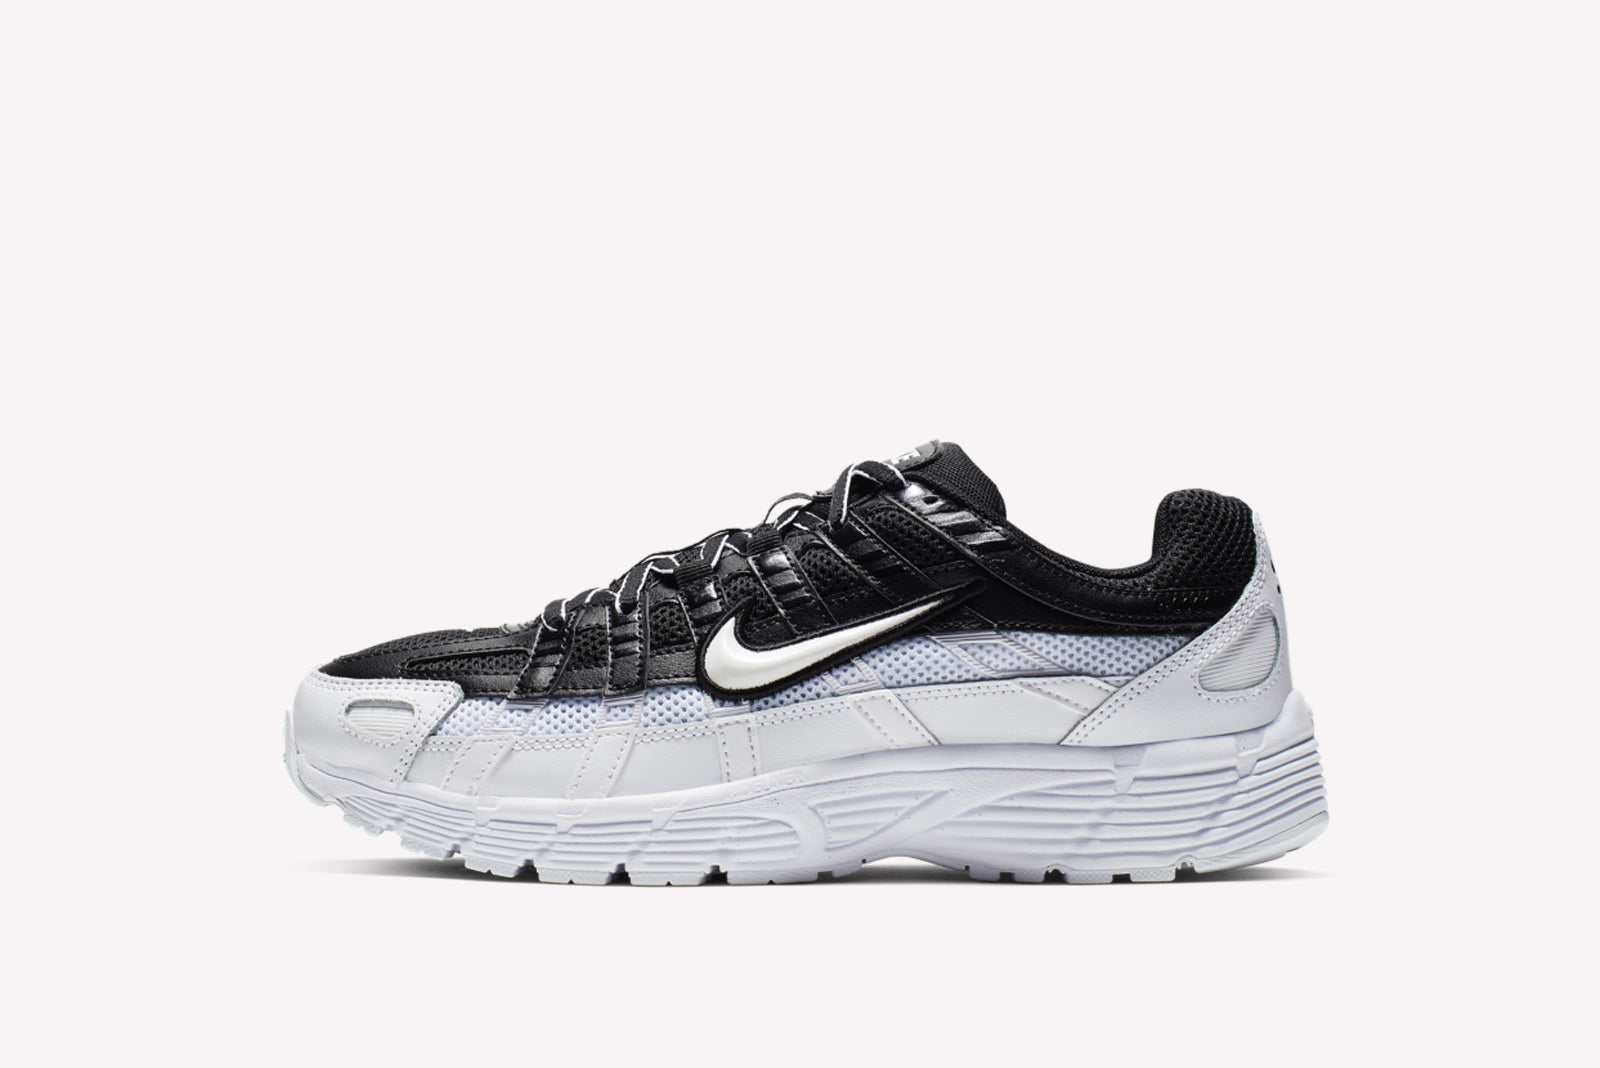 best loved f9202 58b9d Nike Womens P6000 BV1021-003. Black White Price  £95.00. Launch  Thursday  9th May